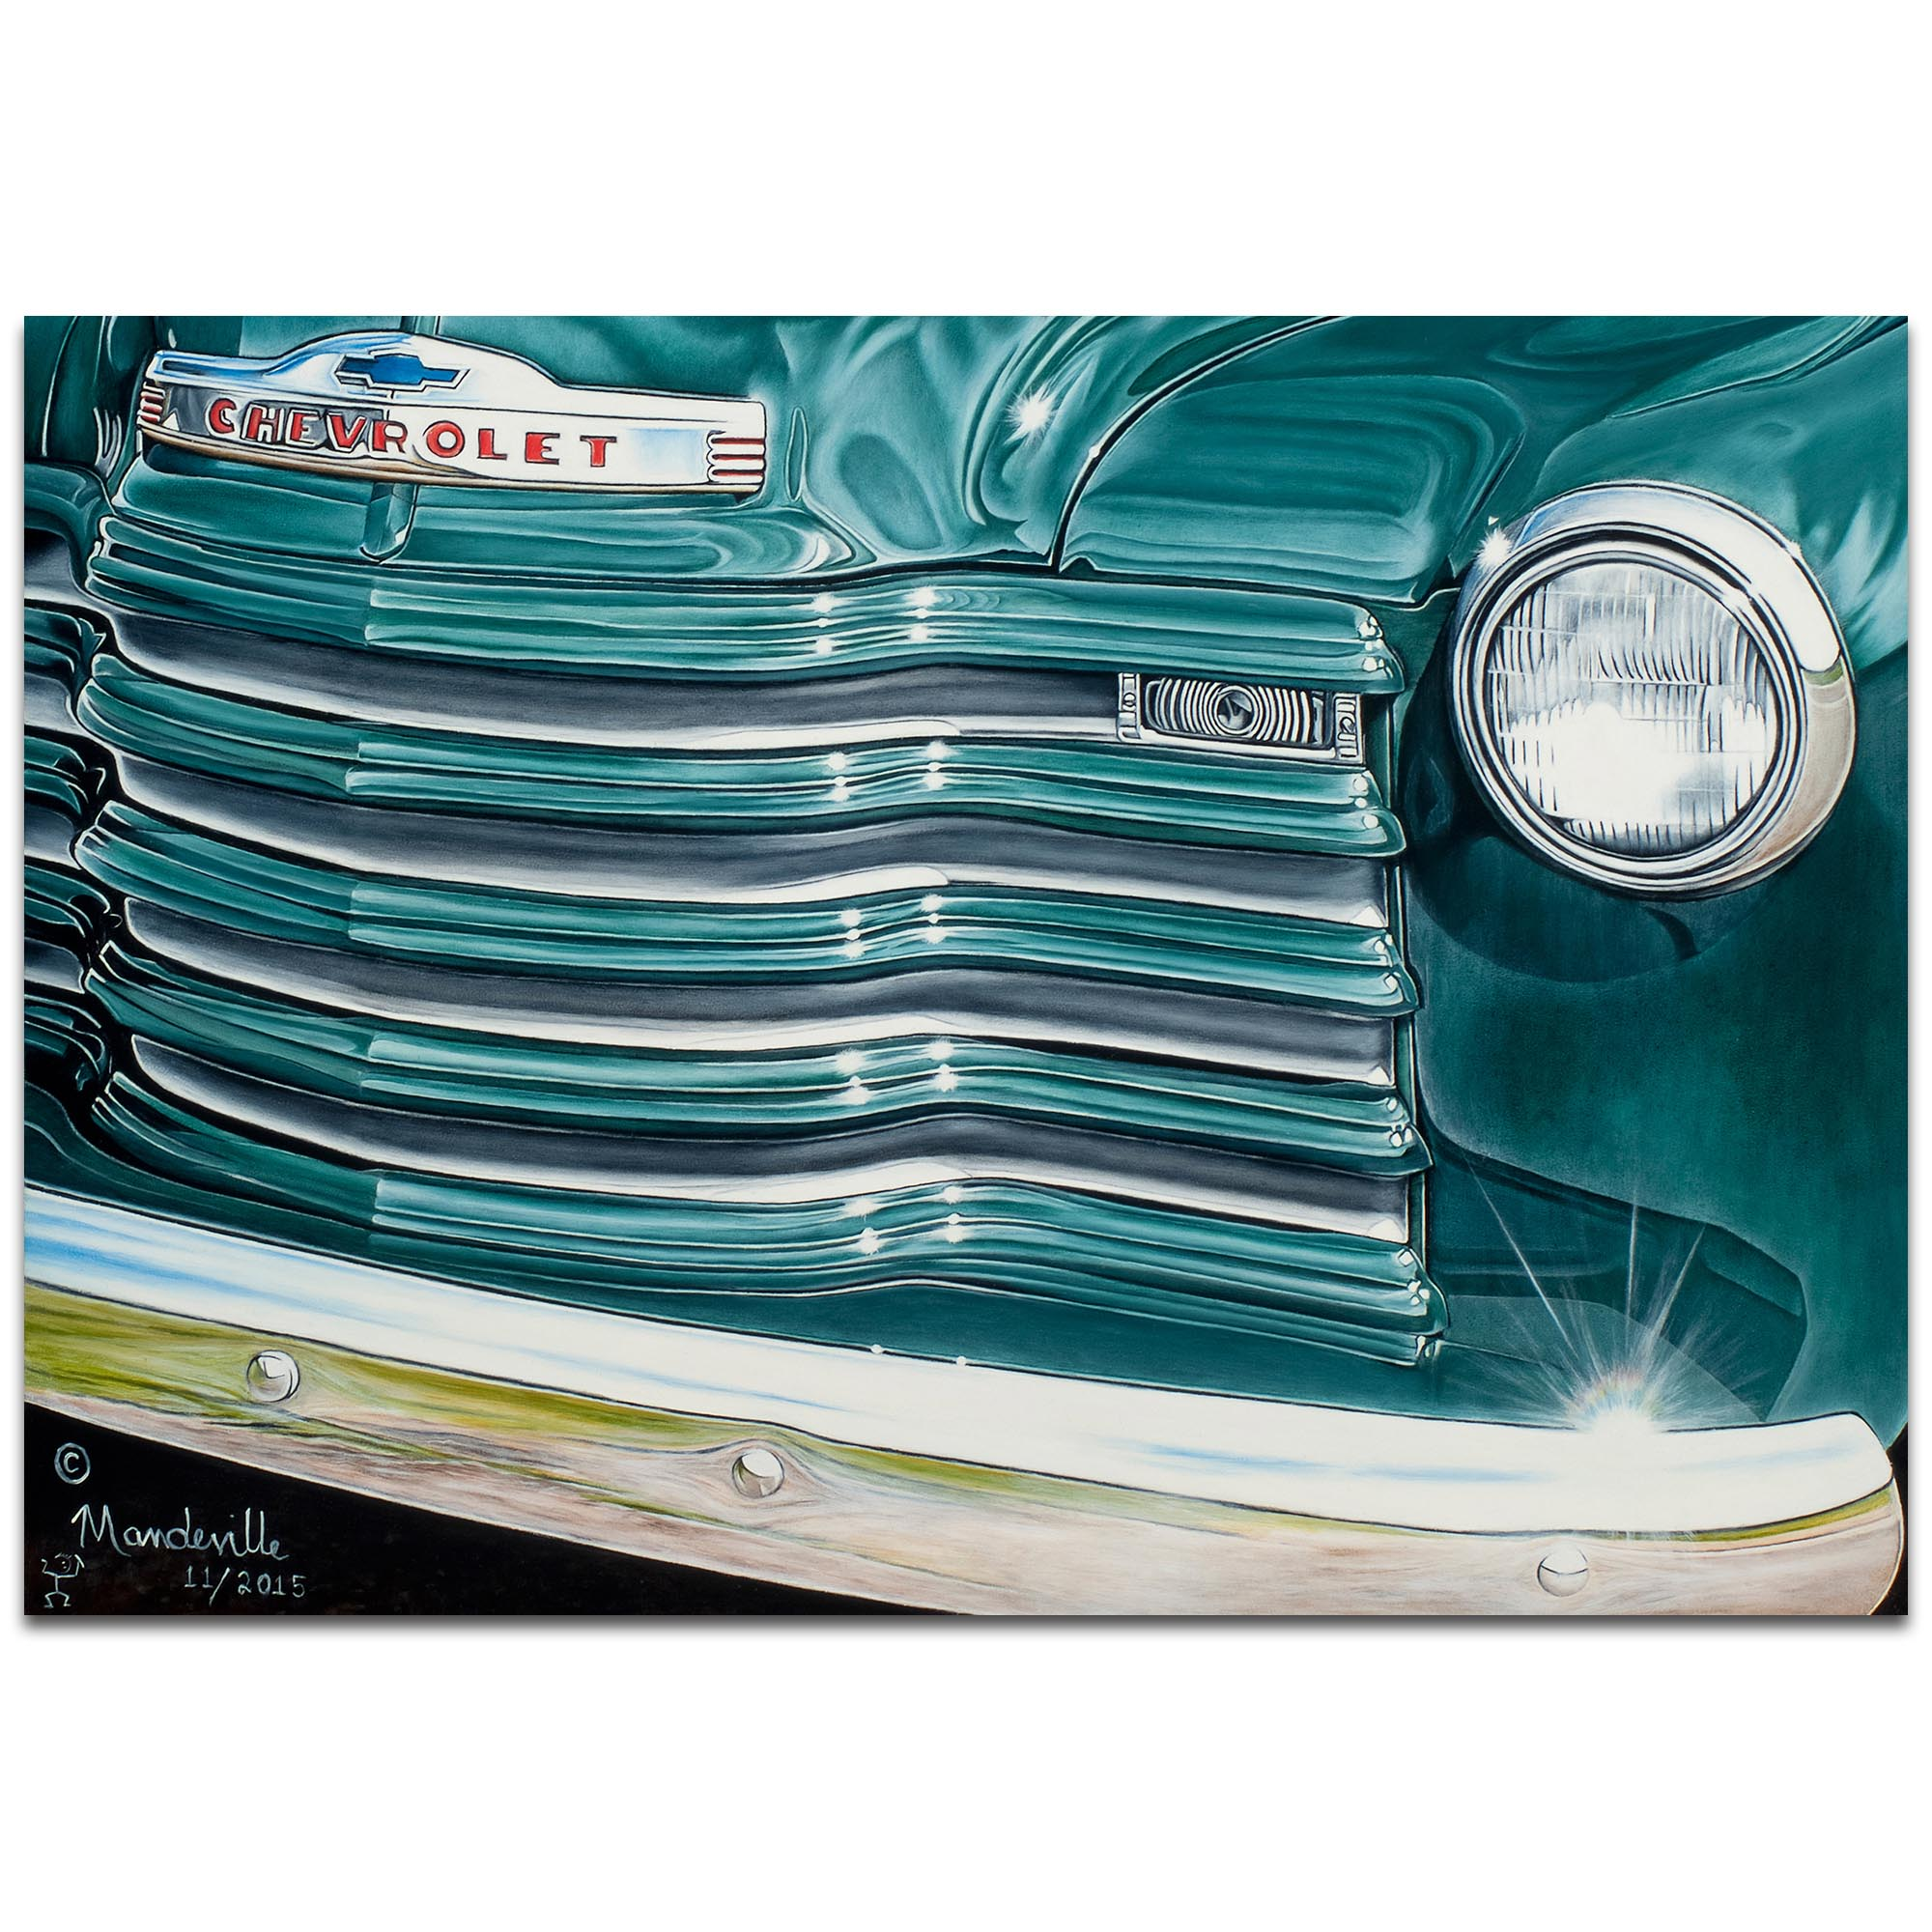 Americana Wall Art 'Grandpaz' - Classic Cars Decor on Metal or Plexiglass